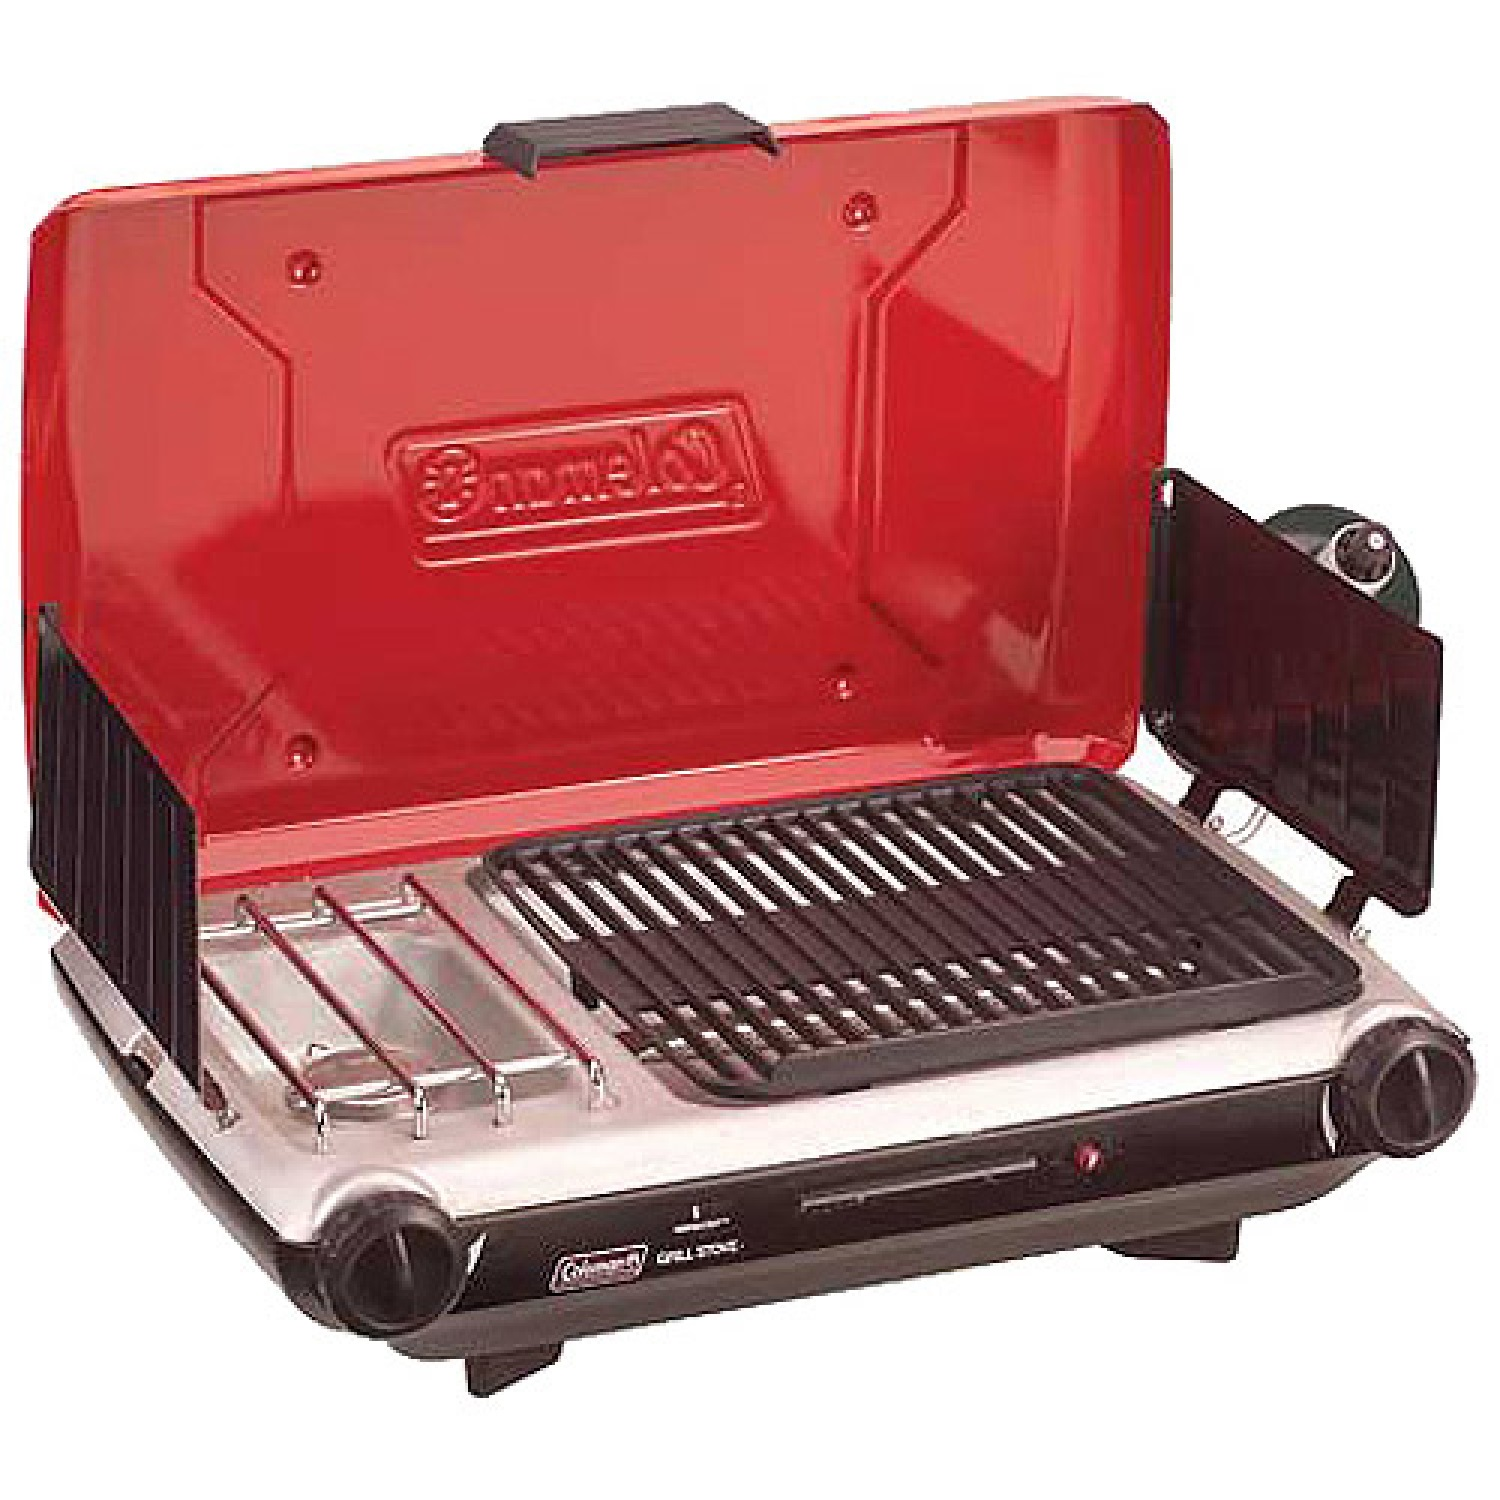 Coleman 2 Burner Grill Stove Combo Red/Black 2000003733